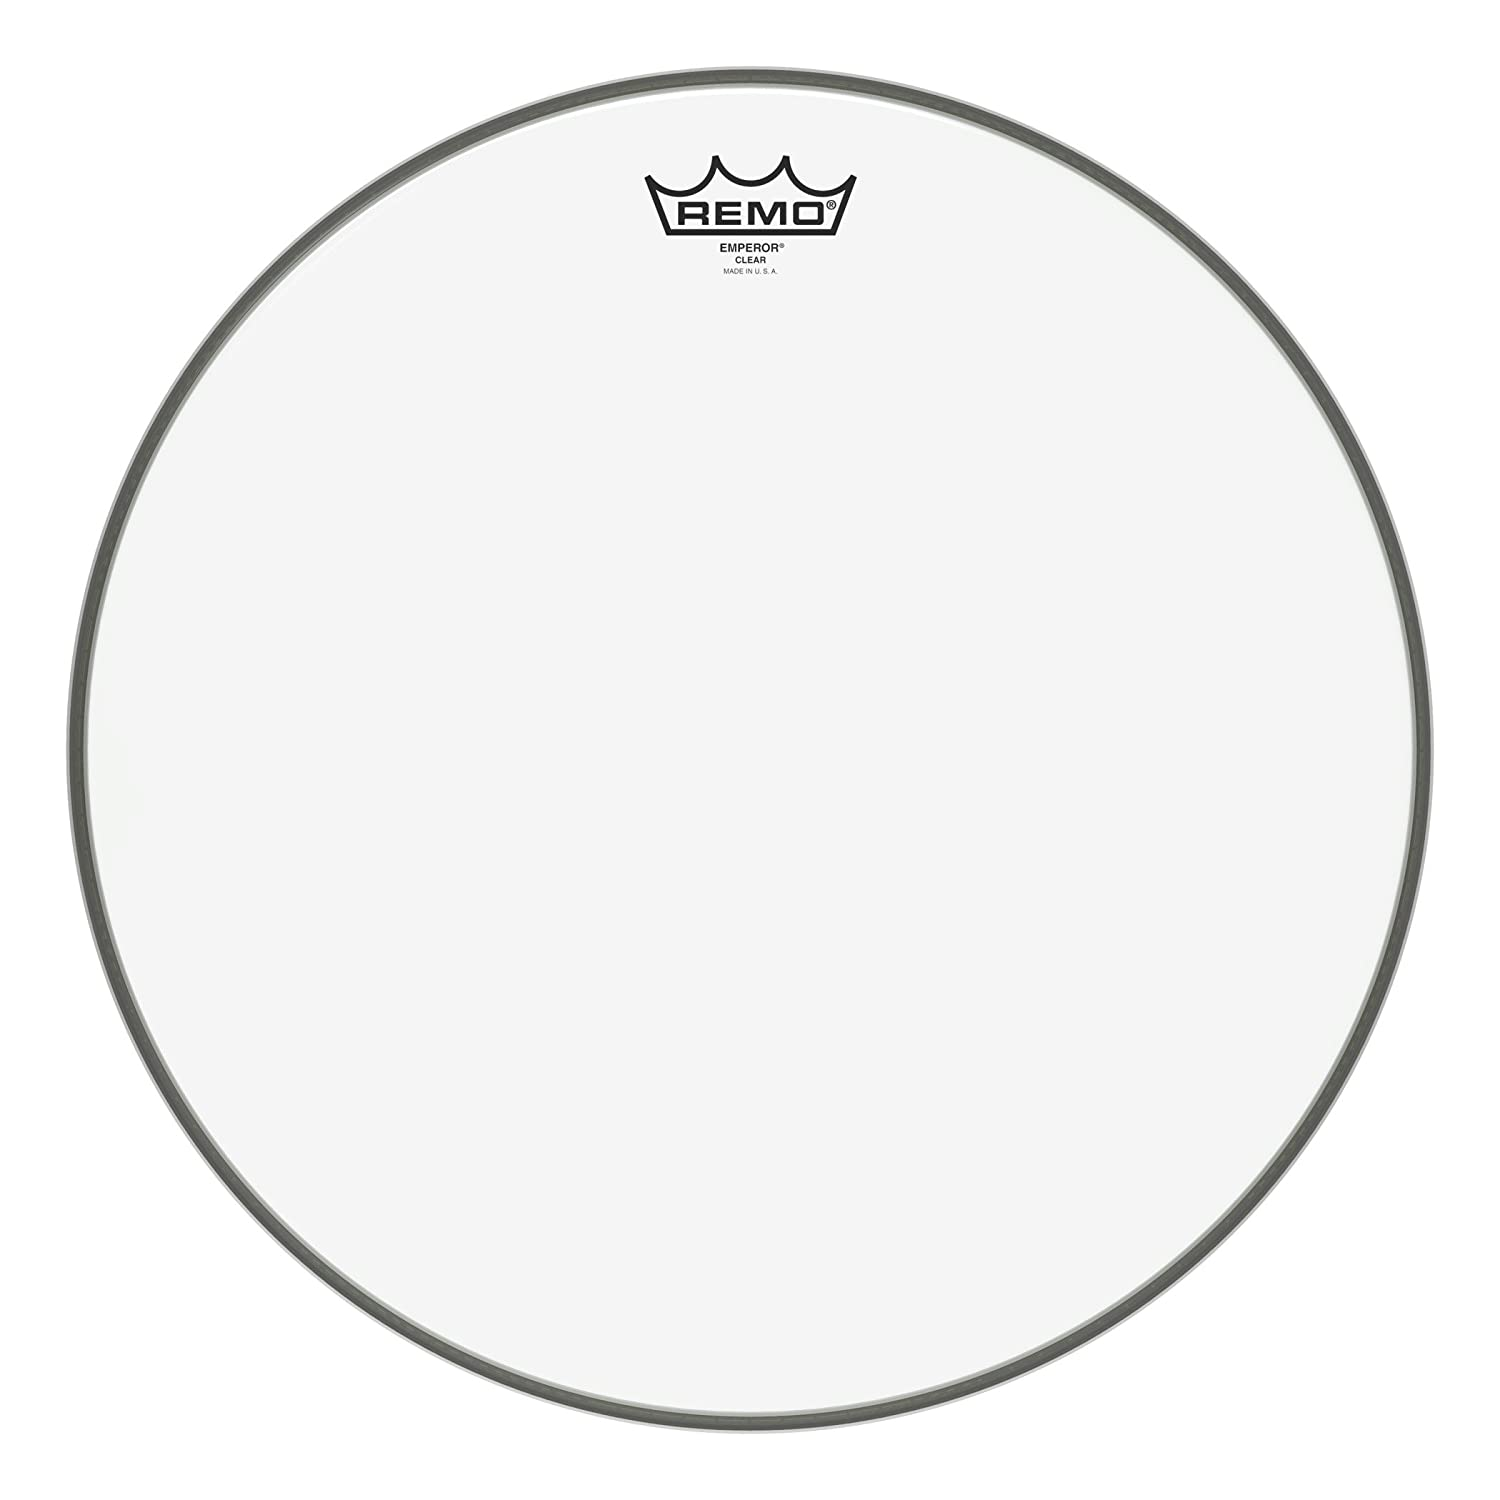 Remo BE0316-00 16-inch Tom Tom Drum Head